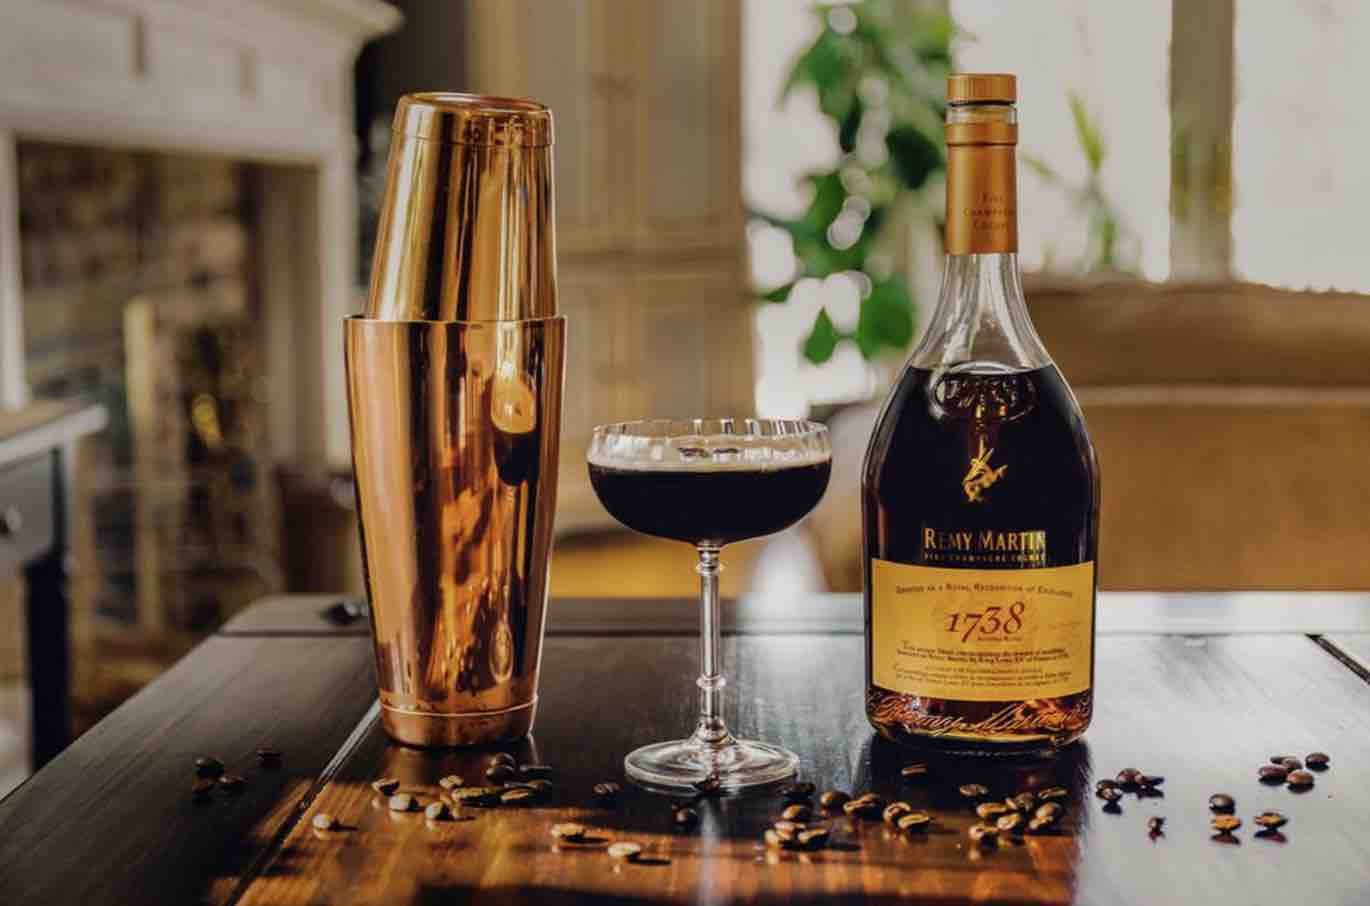 Celebrate National Cognac Day With An Espresso Martini Cocktail After Dinner